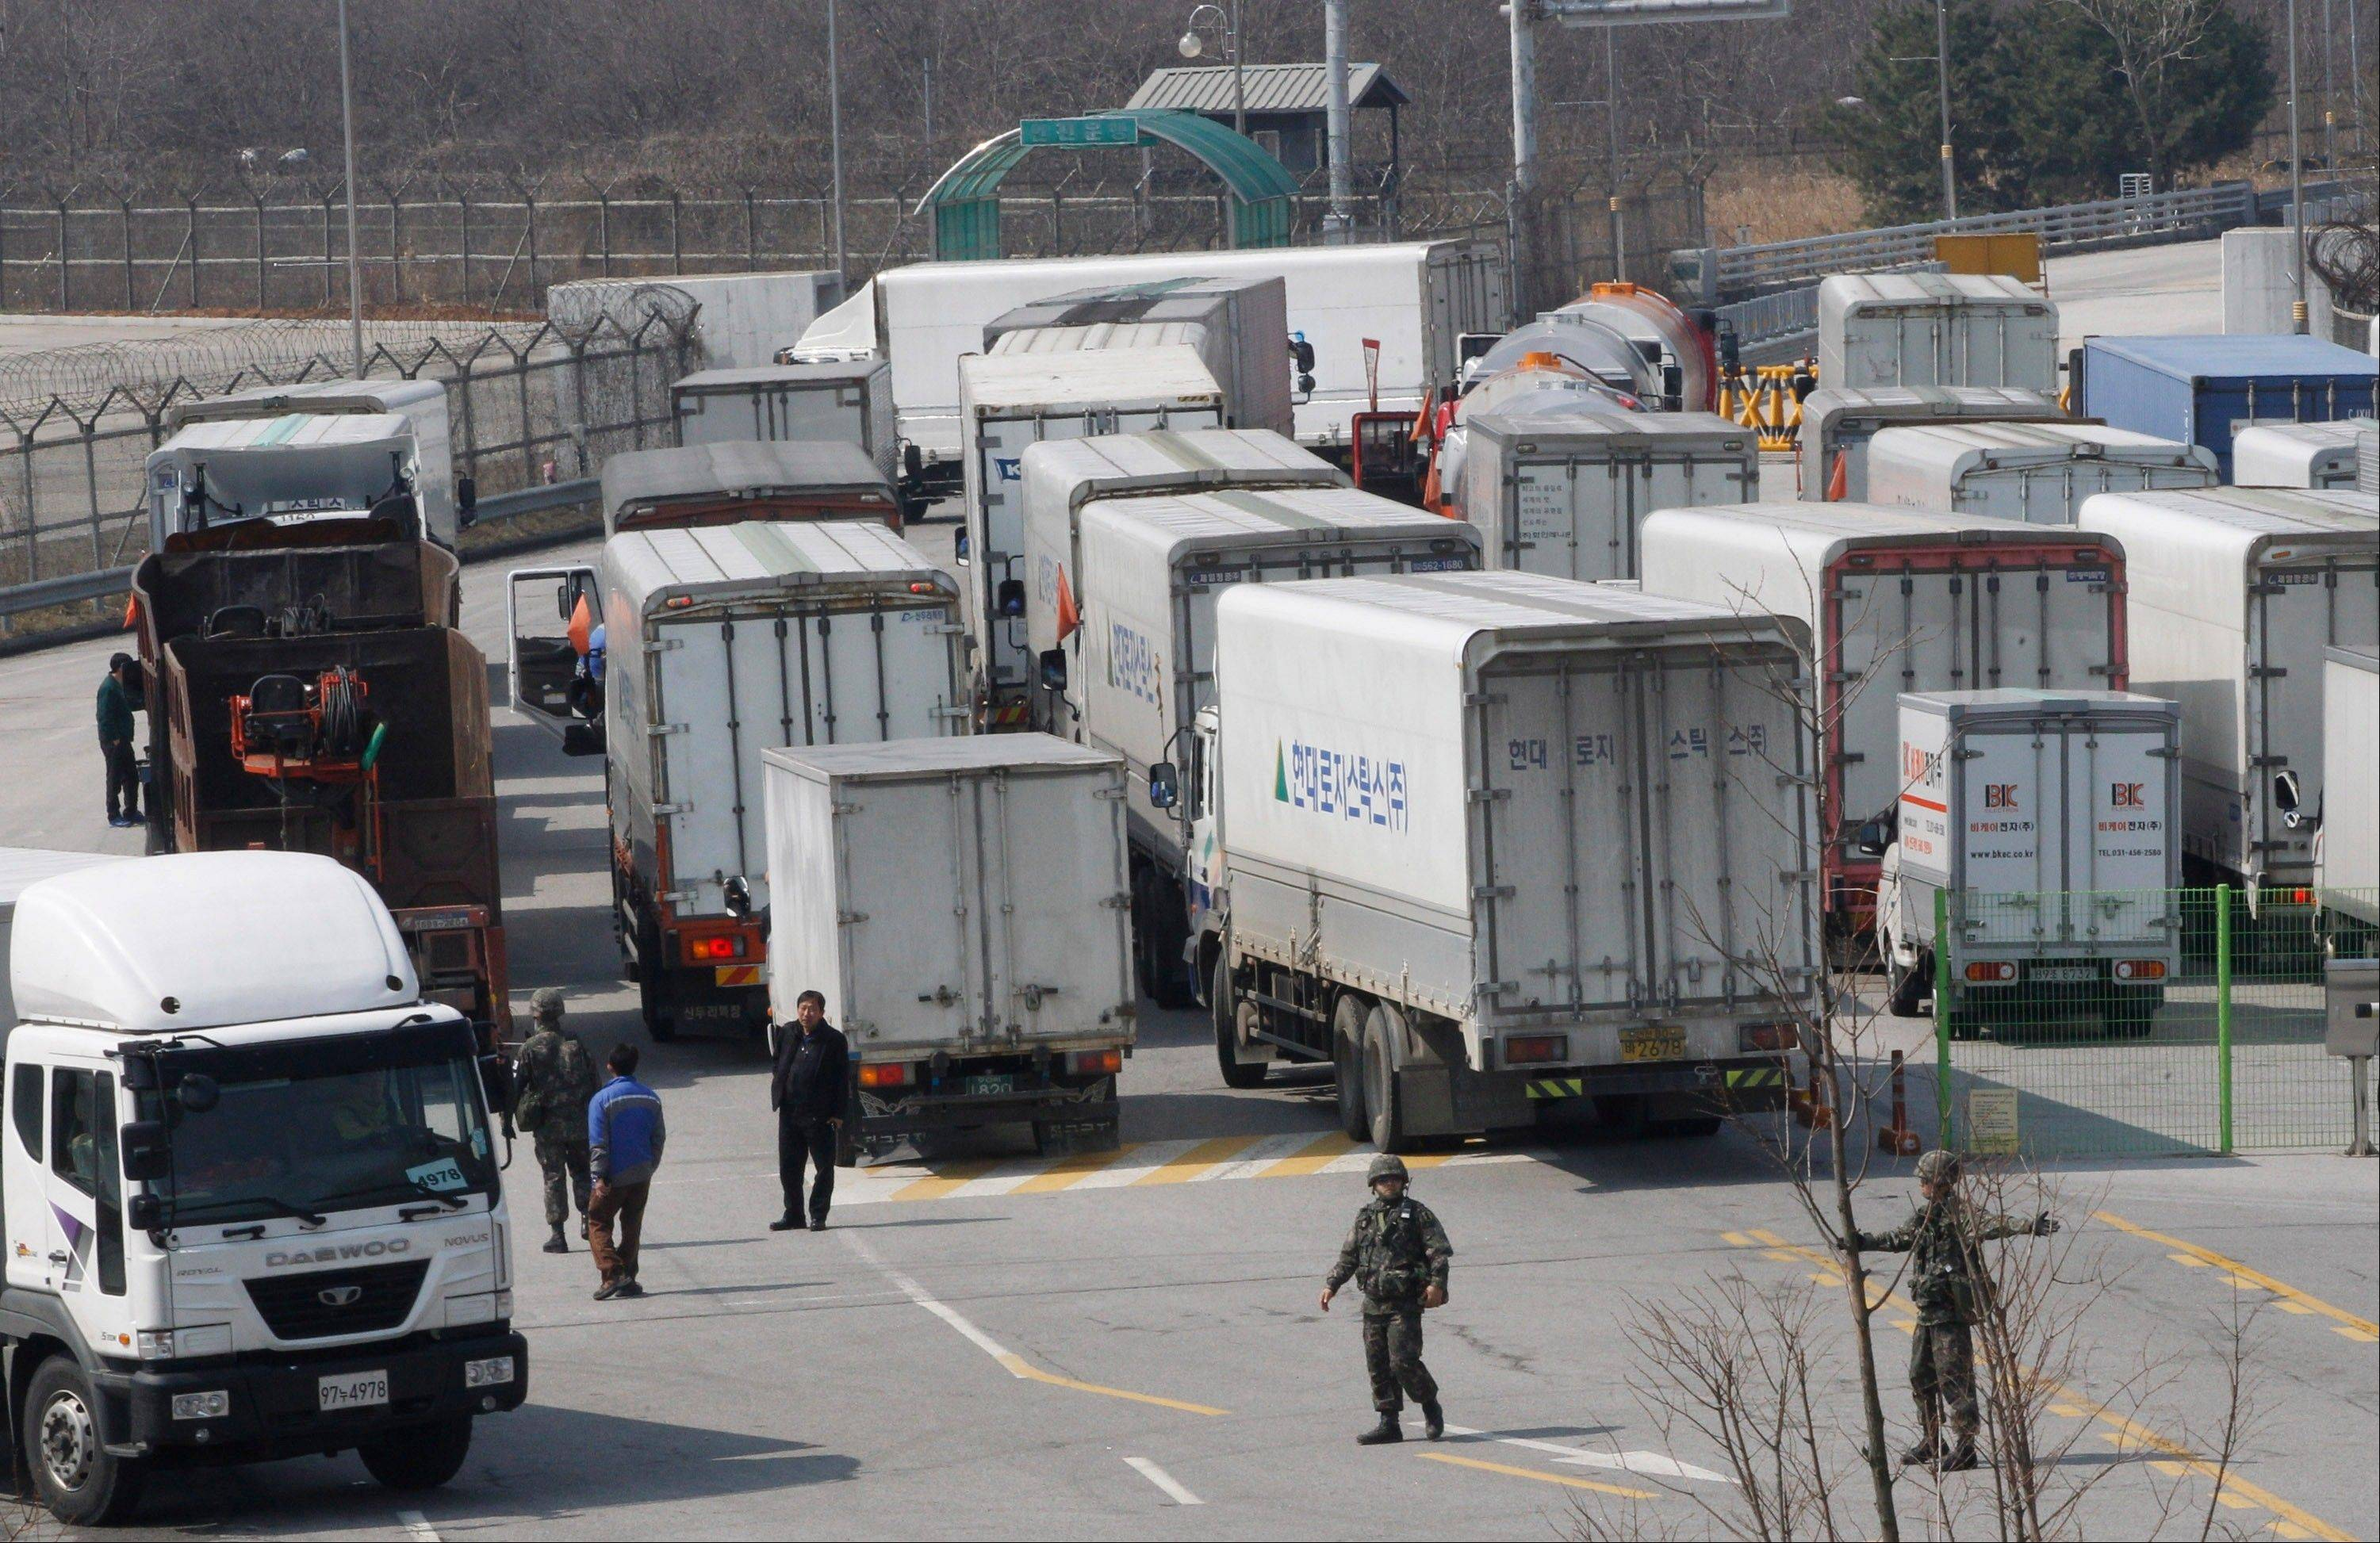 South Korean army soldiers gesture to turn back vehicles as they were refused to enter to Kaesong, North Korea, at the customs, immigration and quarantine office in Paju, South Korea, near the border village of Panmunjom, Wednesday, April 3, 2013. North Korea on Wednesday barred South Korean workers from entering the jointly run factory park just over the heavily armed border in the North, officials in Seoul said, a day after Pyongyang announced it would restart its long-shuttered plutonium reactor and increase production of nuclear weapons material.